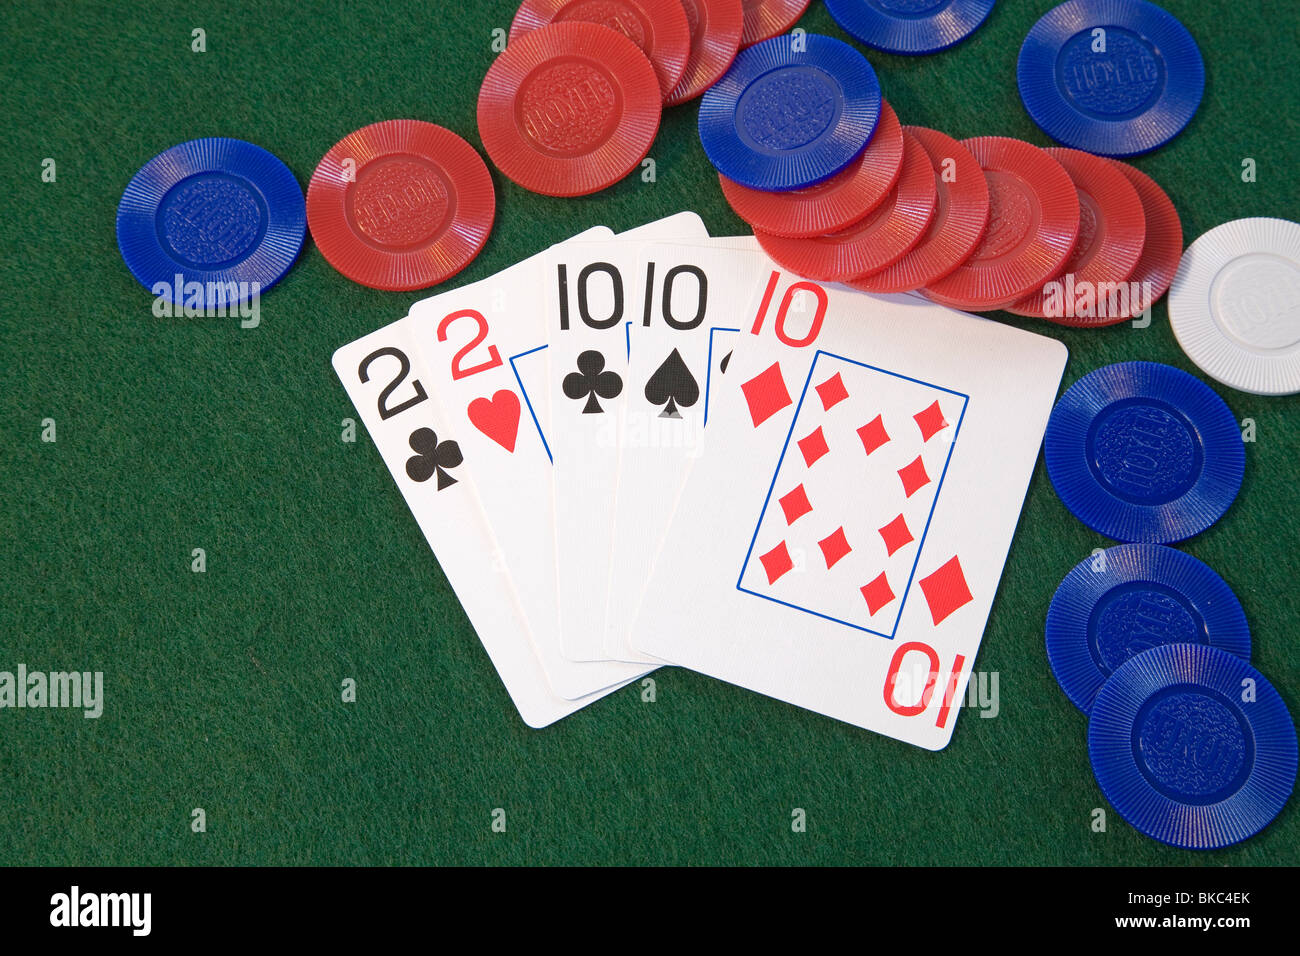 A Full House Hand Deuces And Tens In Five Card Draw Or Stud